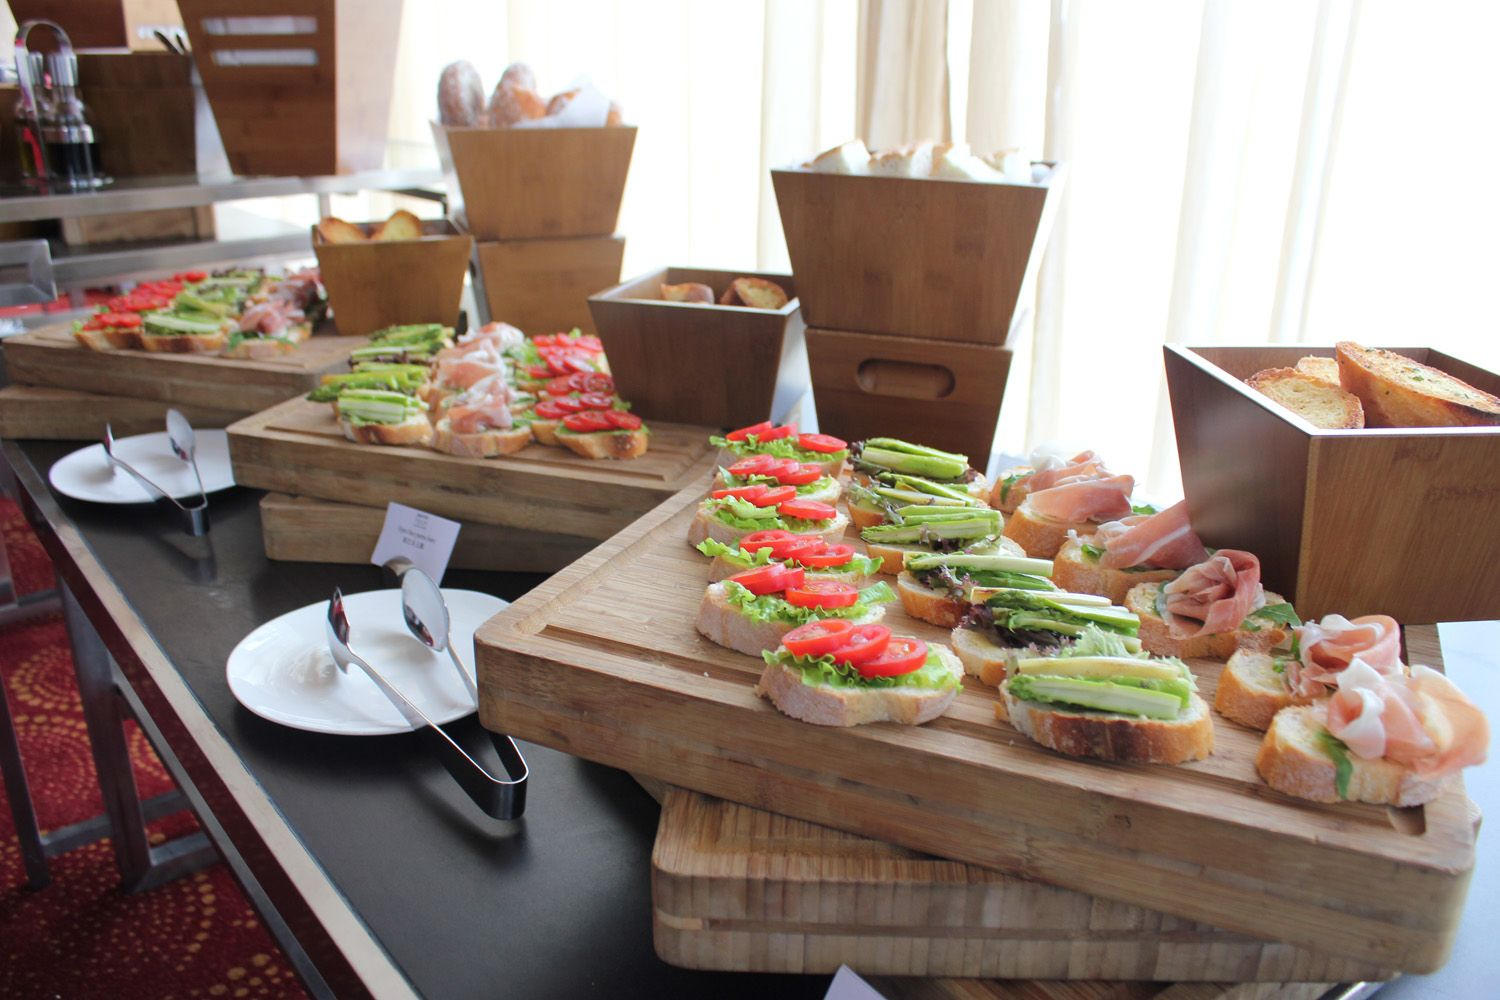 During meeting breaks, serve openfaced sandwiches made